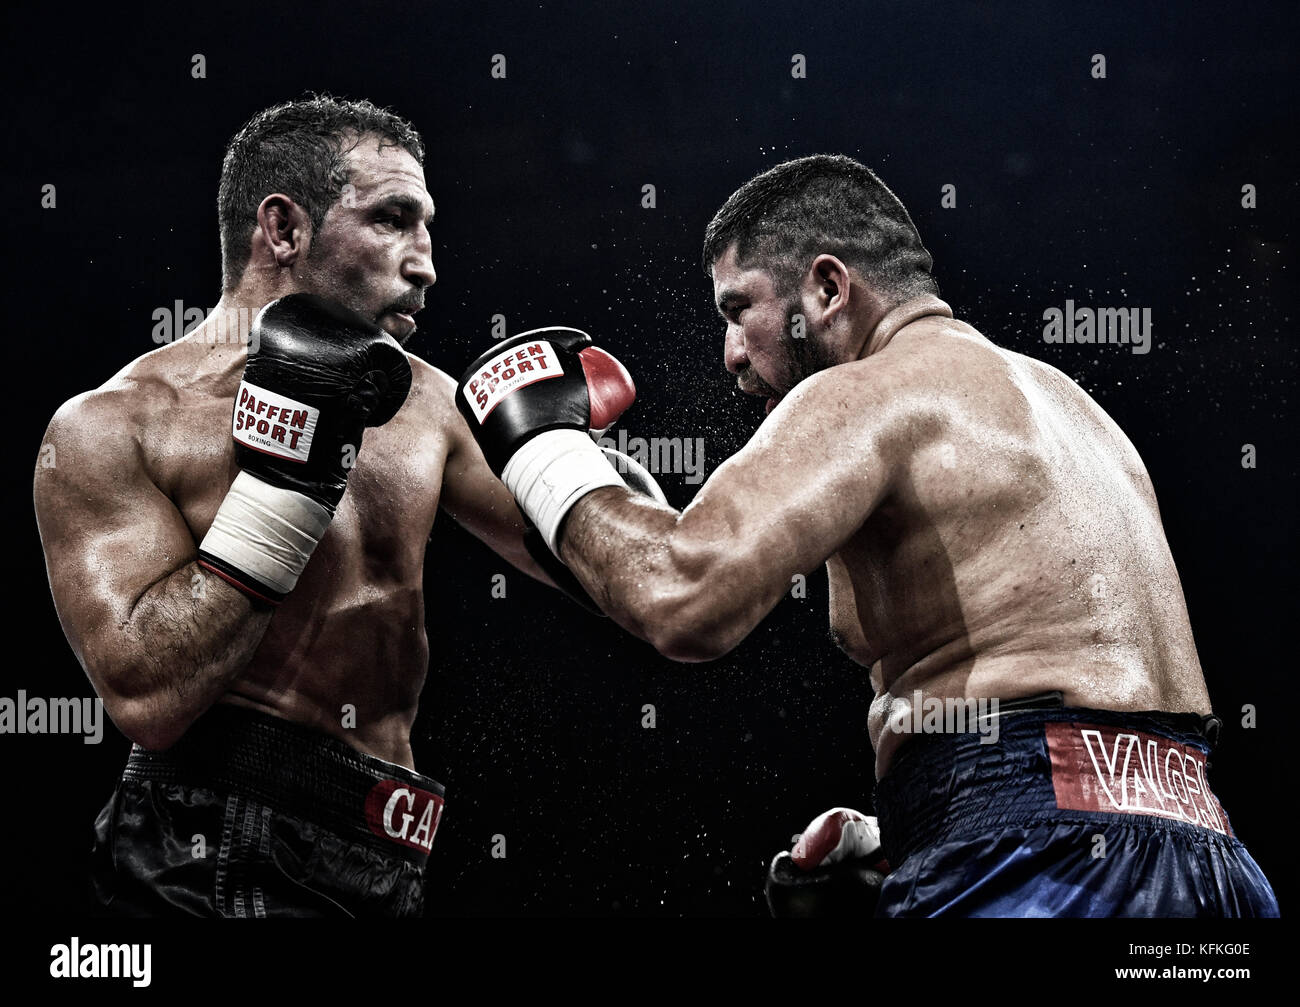 Boxing match, Firat Arslan, GBR, black trousers against Alejandro Emilio Valori, ARG, blue trousers, Hanns-Martin - Stock Image